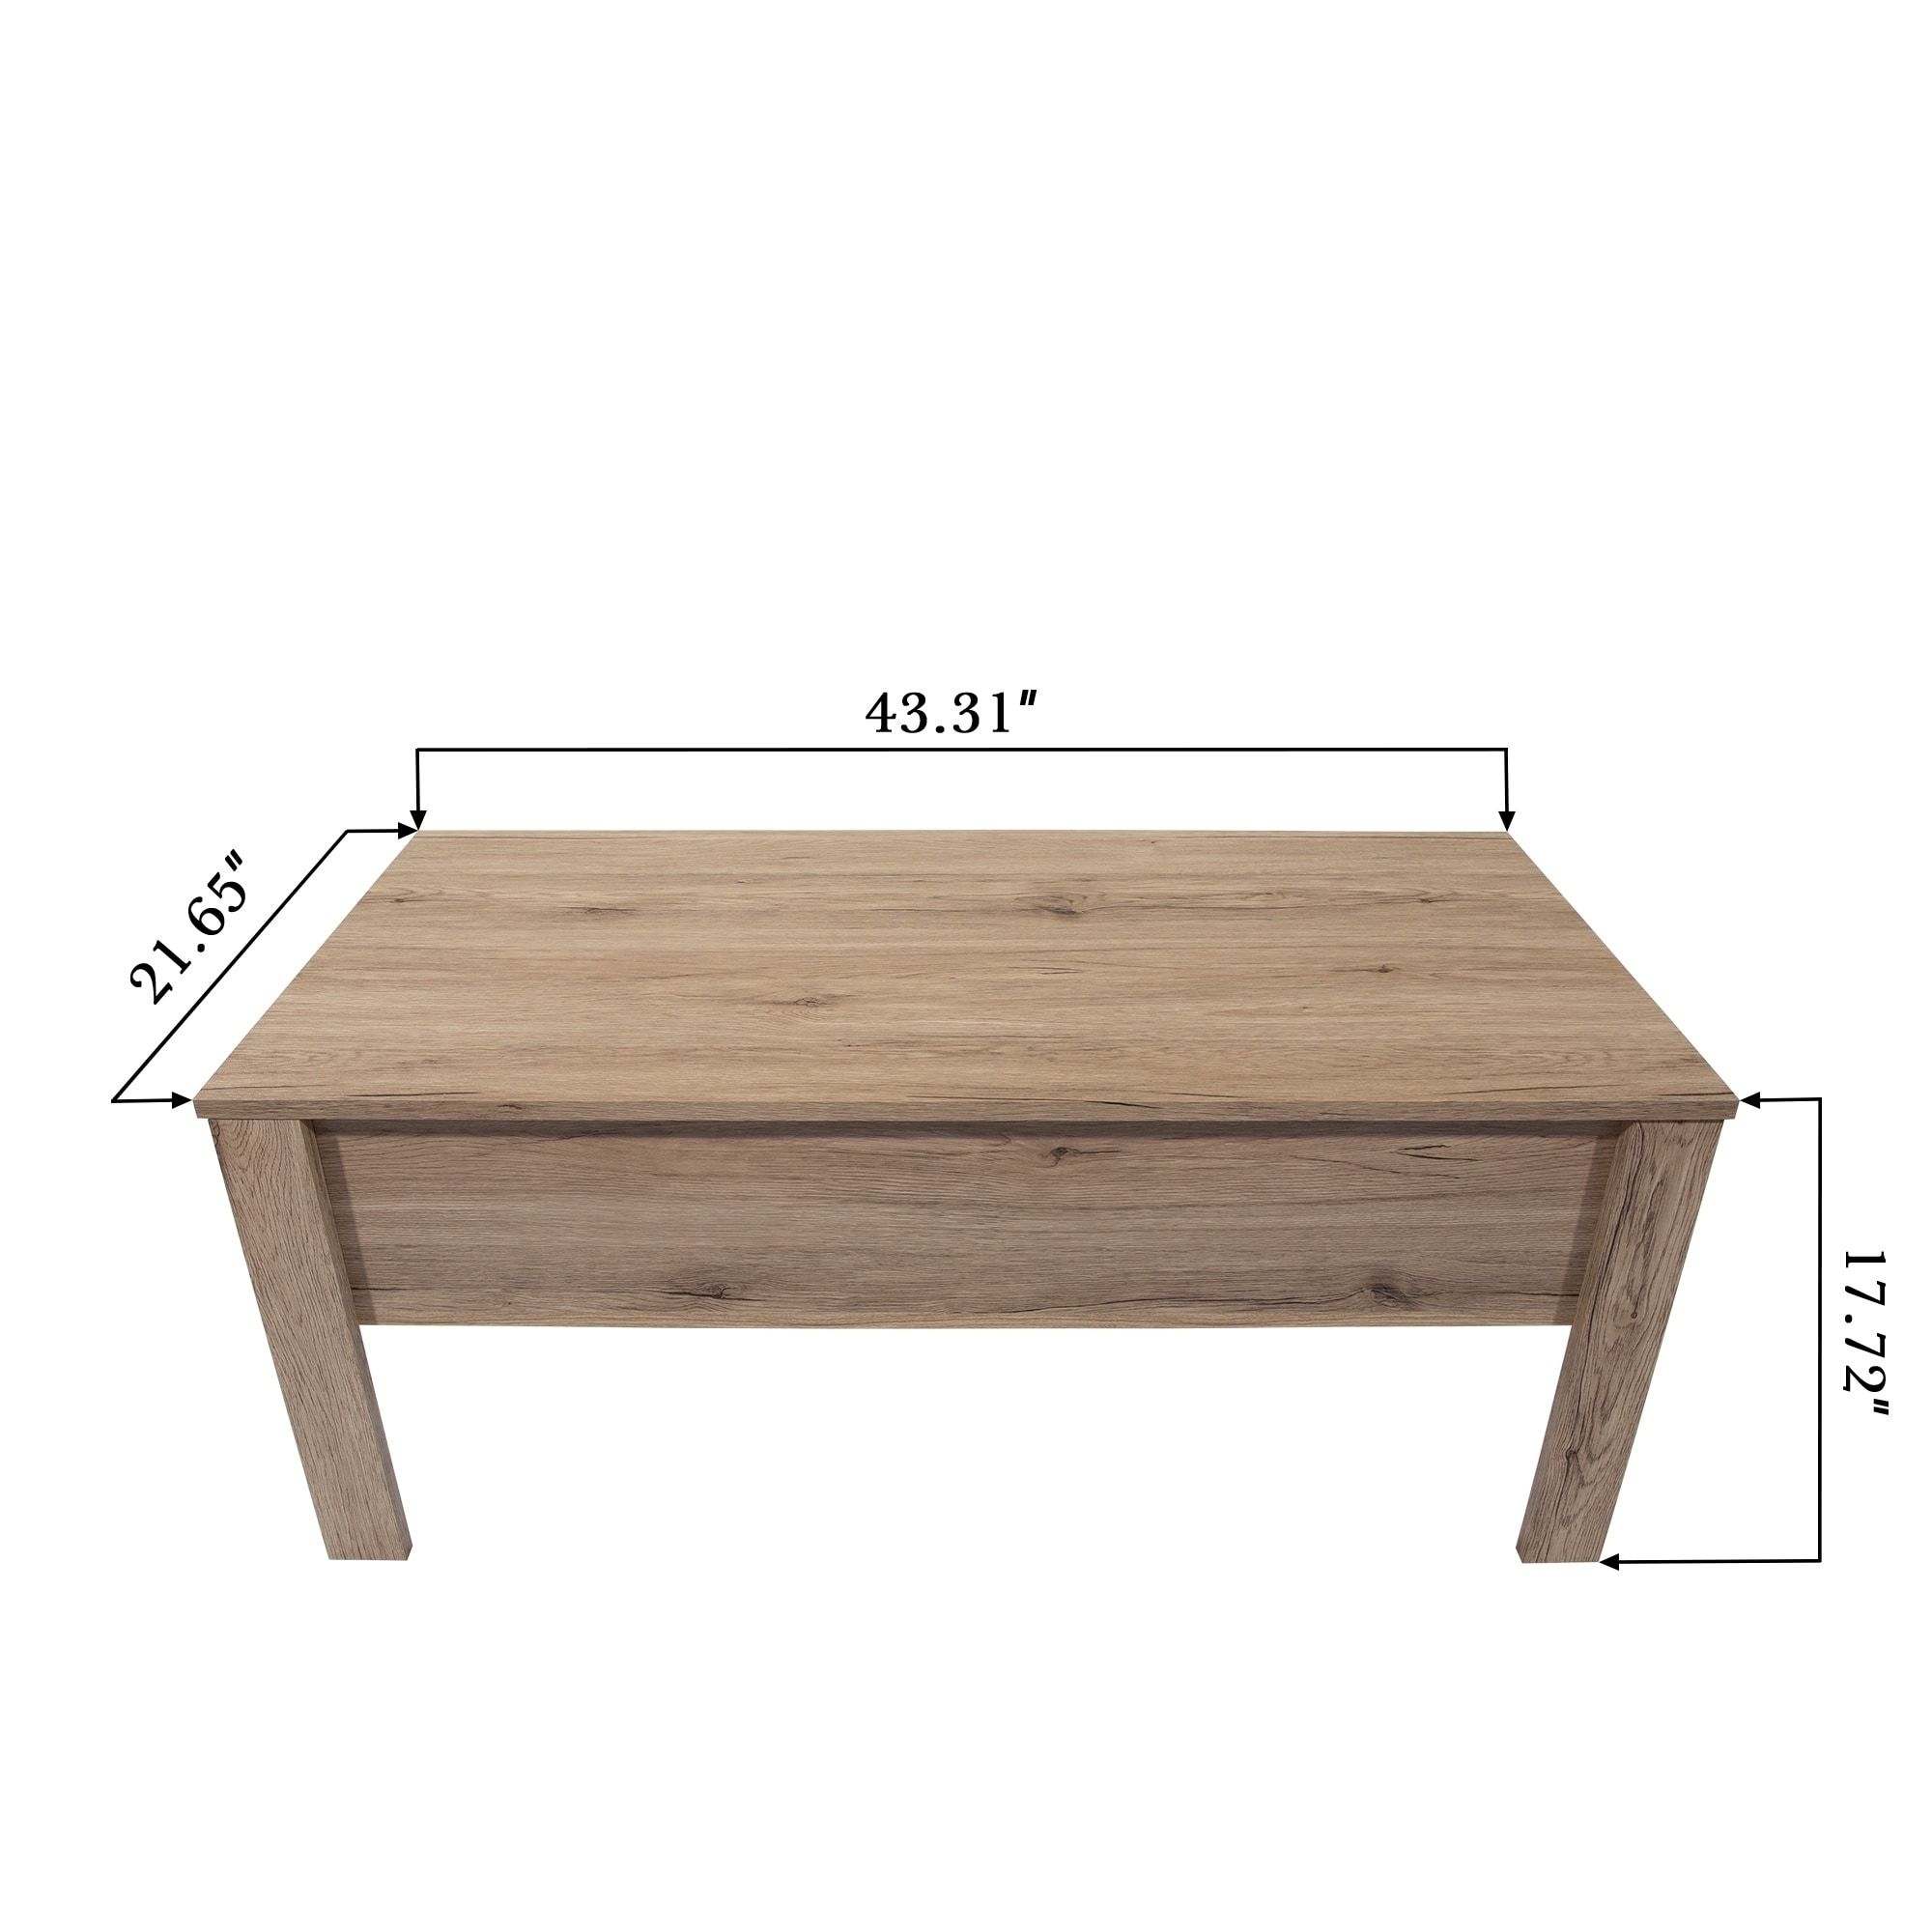 Emily Light Oak Finish Lift Top Coffee Table With Storage 21 65 X 43 31 17 72 On Free Shipping Today 22869182